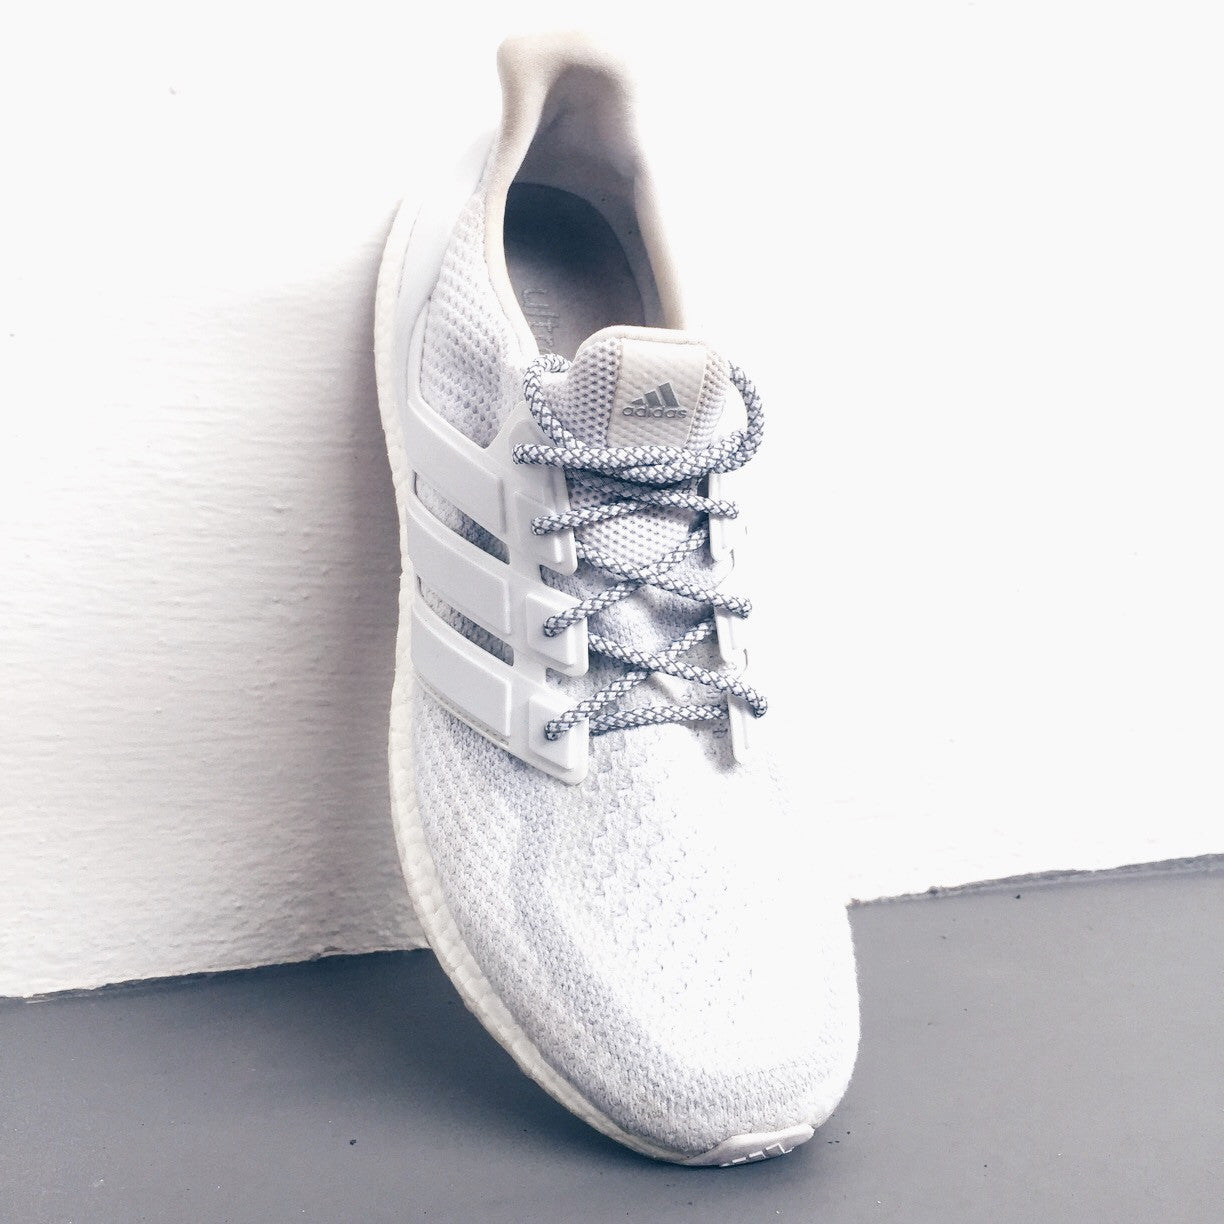 4f650ecbf How To Lace Your Sneakers   Swap Your Shoe Laces   ADIDAS Ultra Boost 2.0  Triple